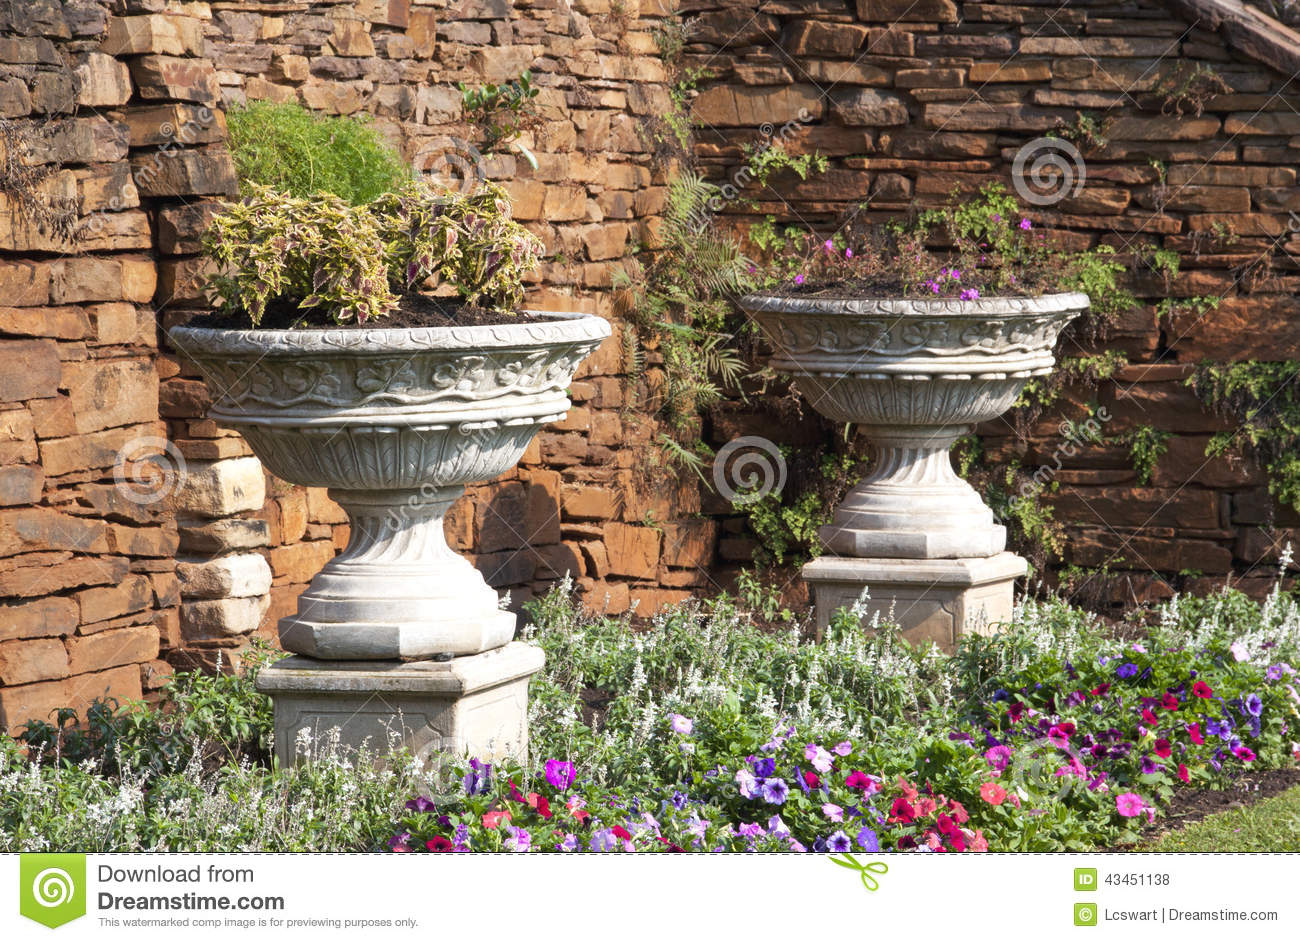 Two Urn Flower Pots In Garden Setting Stock Photo.